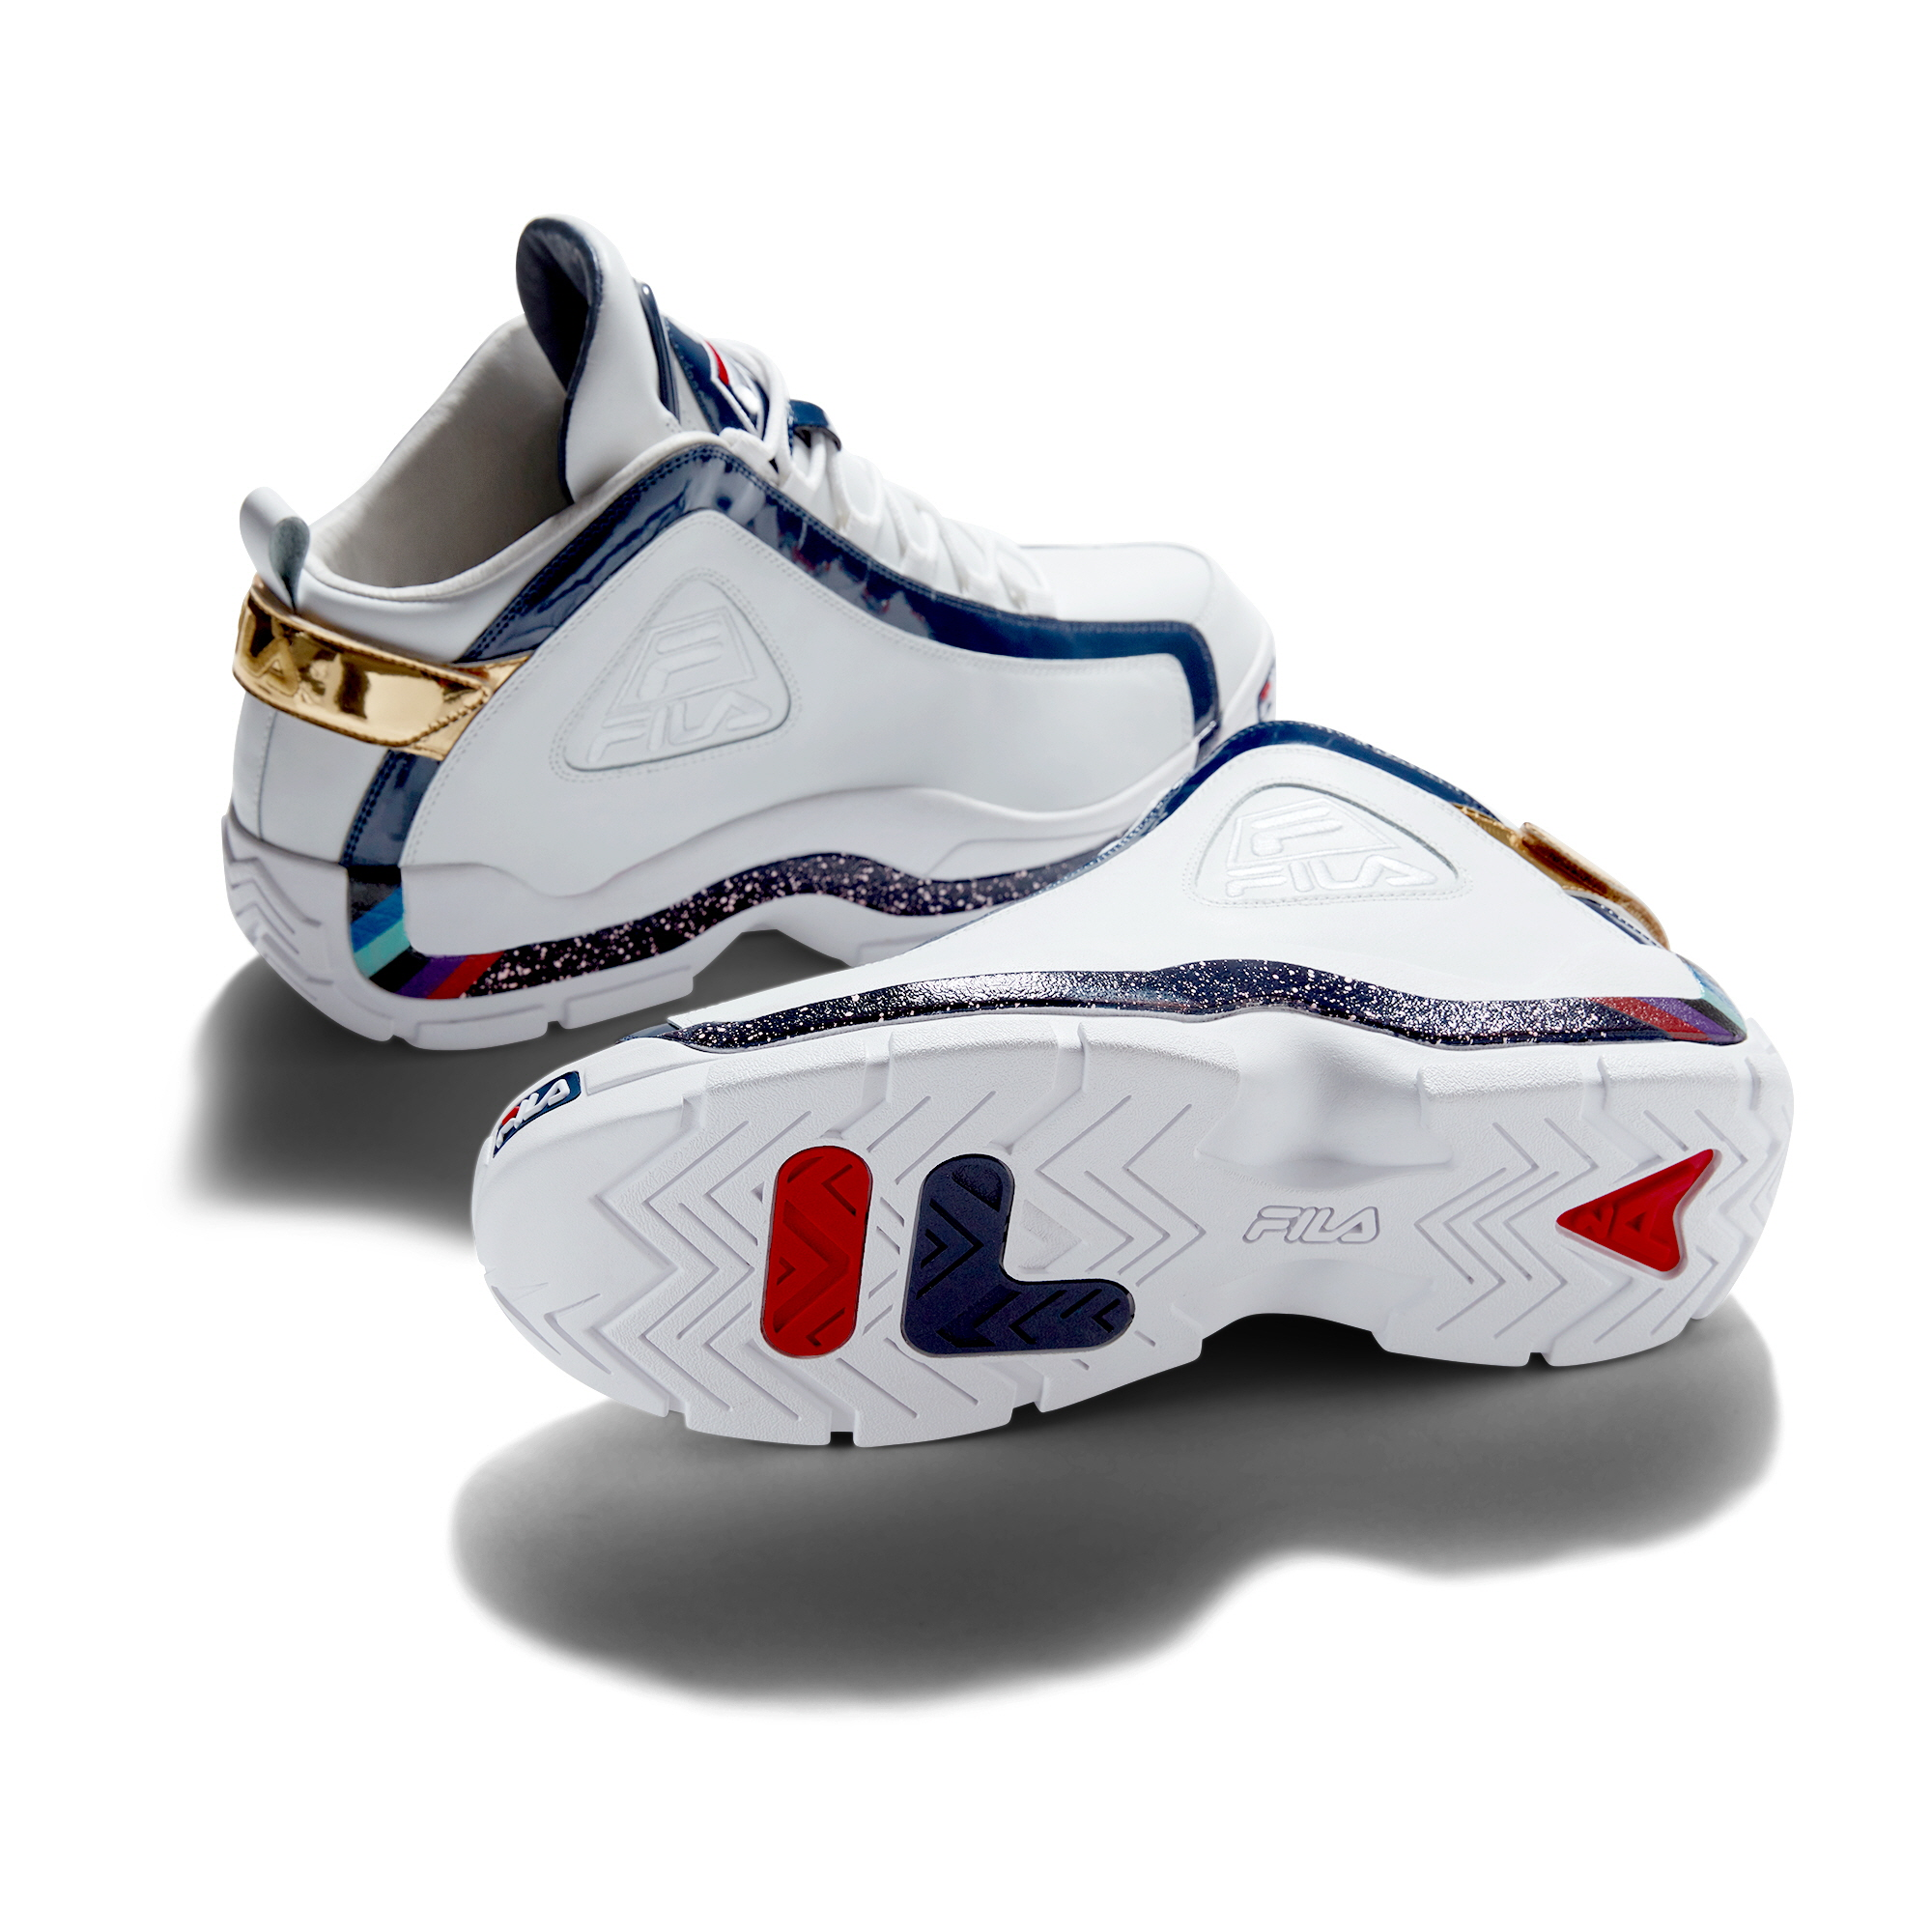 9357e6be2de (FILA North America) - Last week, FILA announced that it has signed NBA  Hall of Famer Grant Hill to a lifetime deal. To celebrate the partnership,  the brand ...